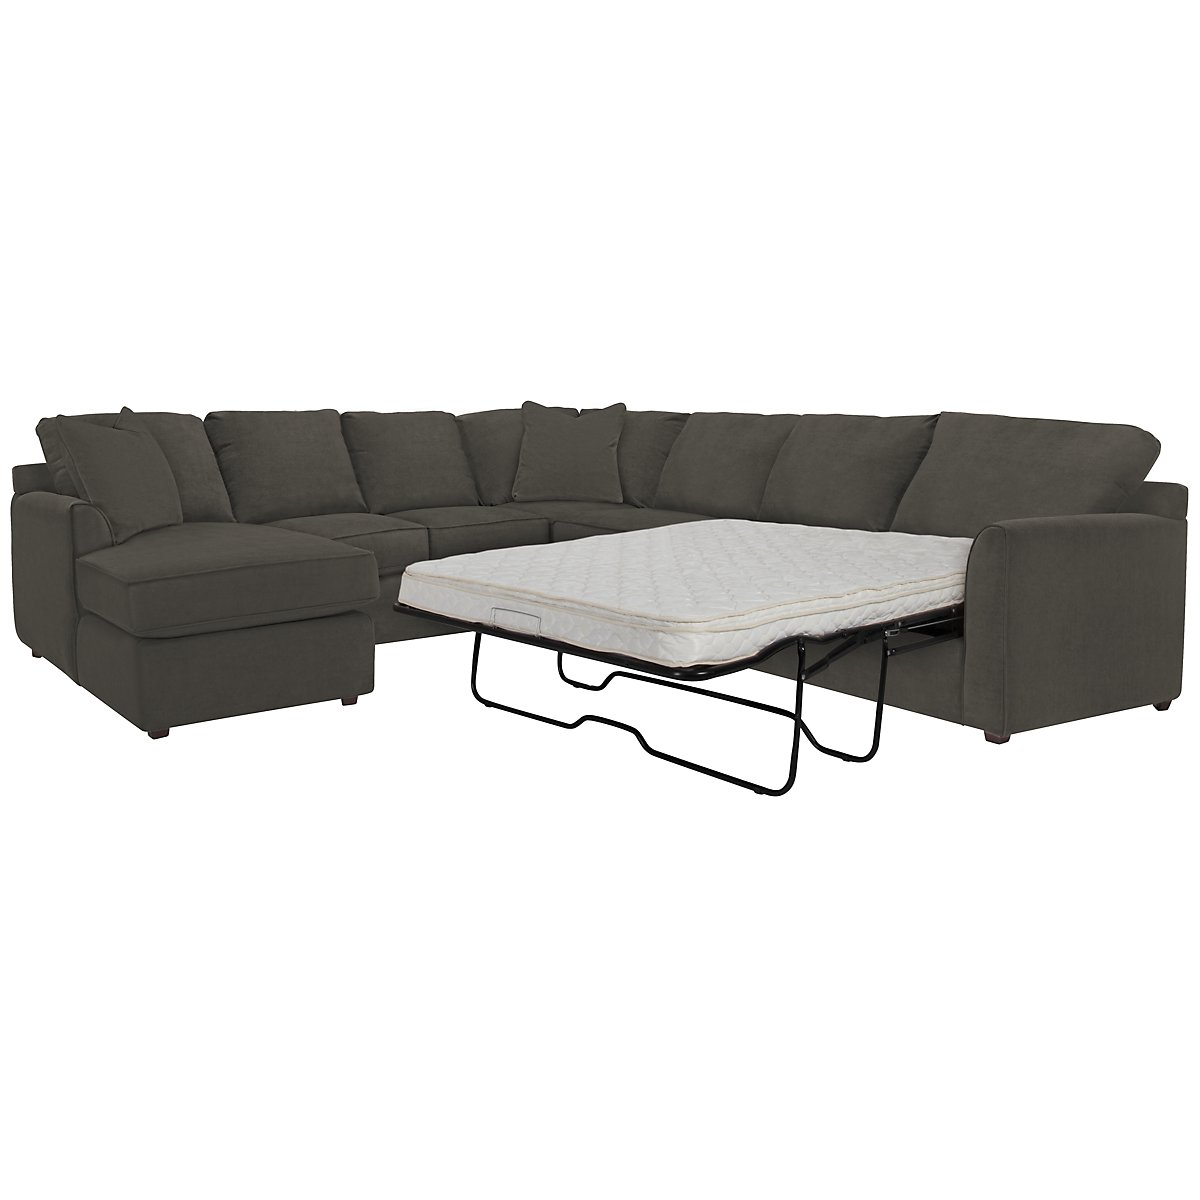 Express3 Dk Gray Microfiber Left Chaise Innerspring Sleeper Sectional